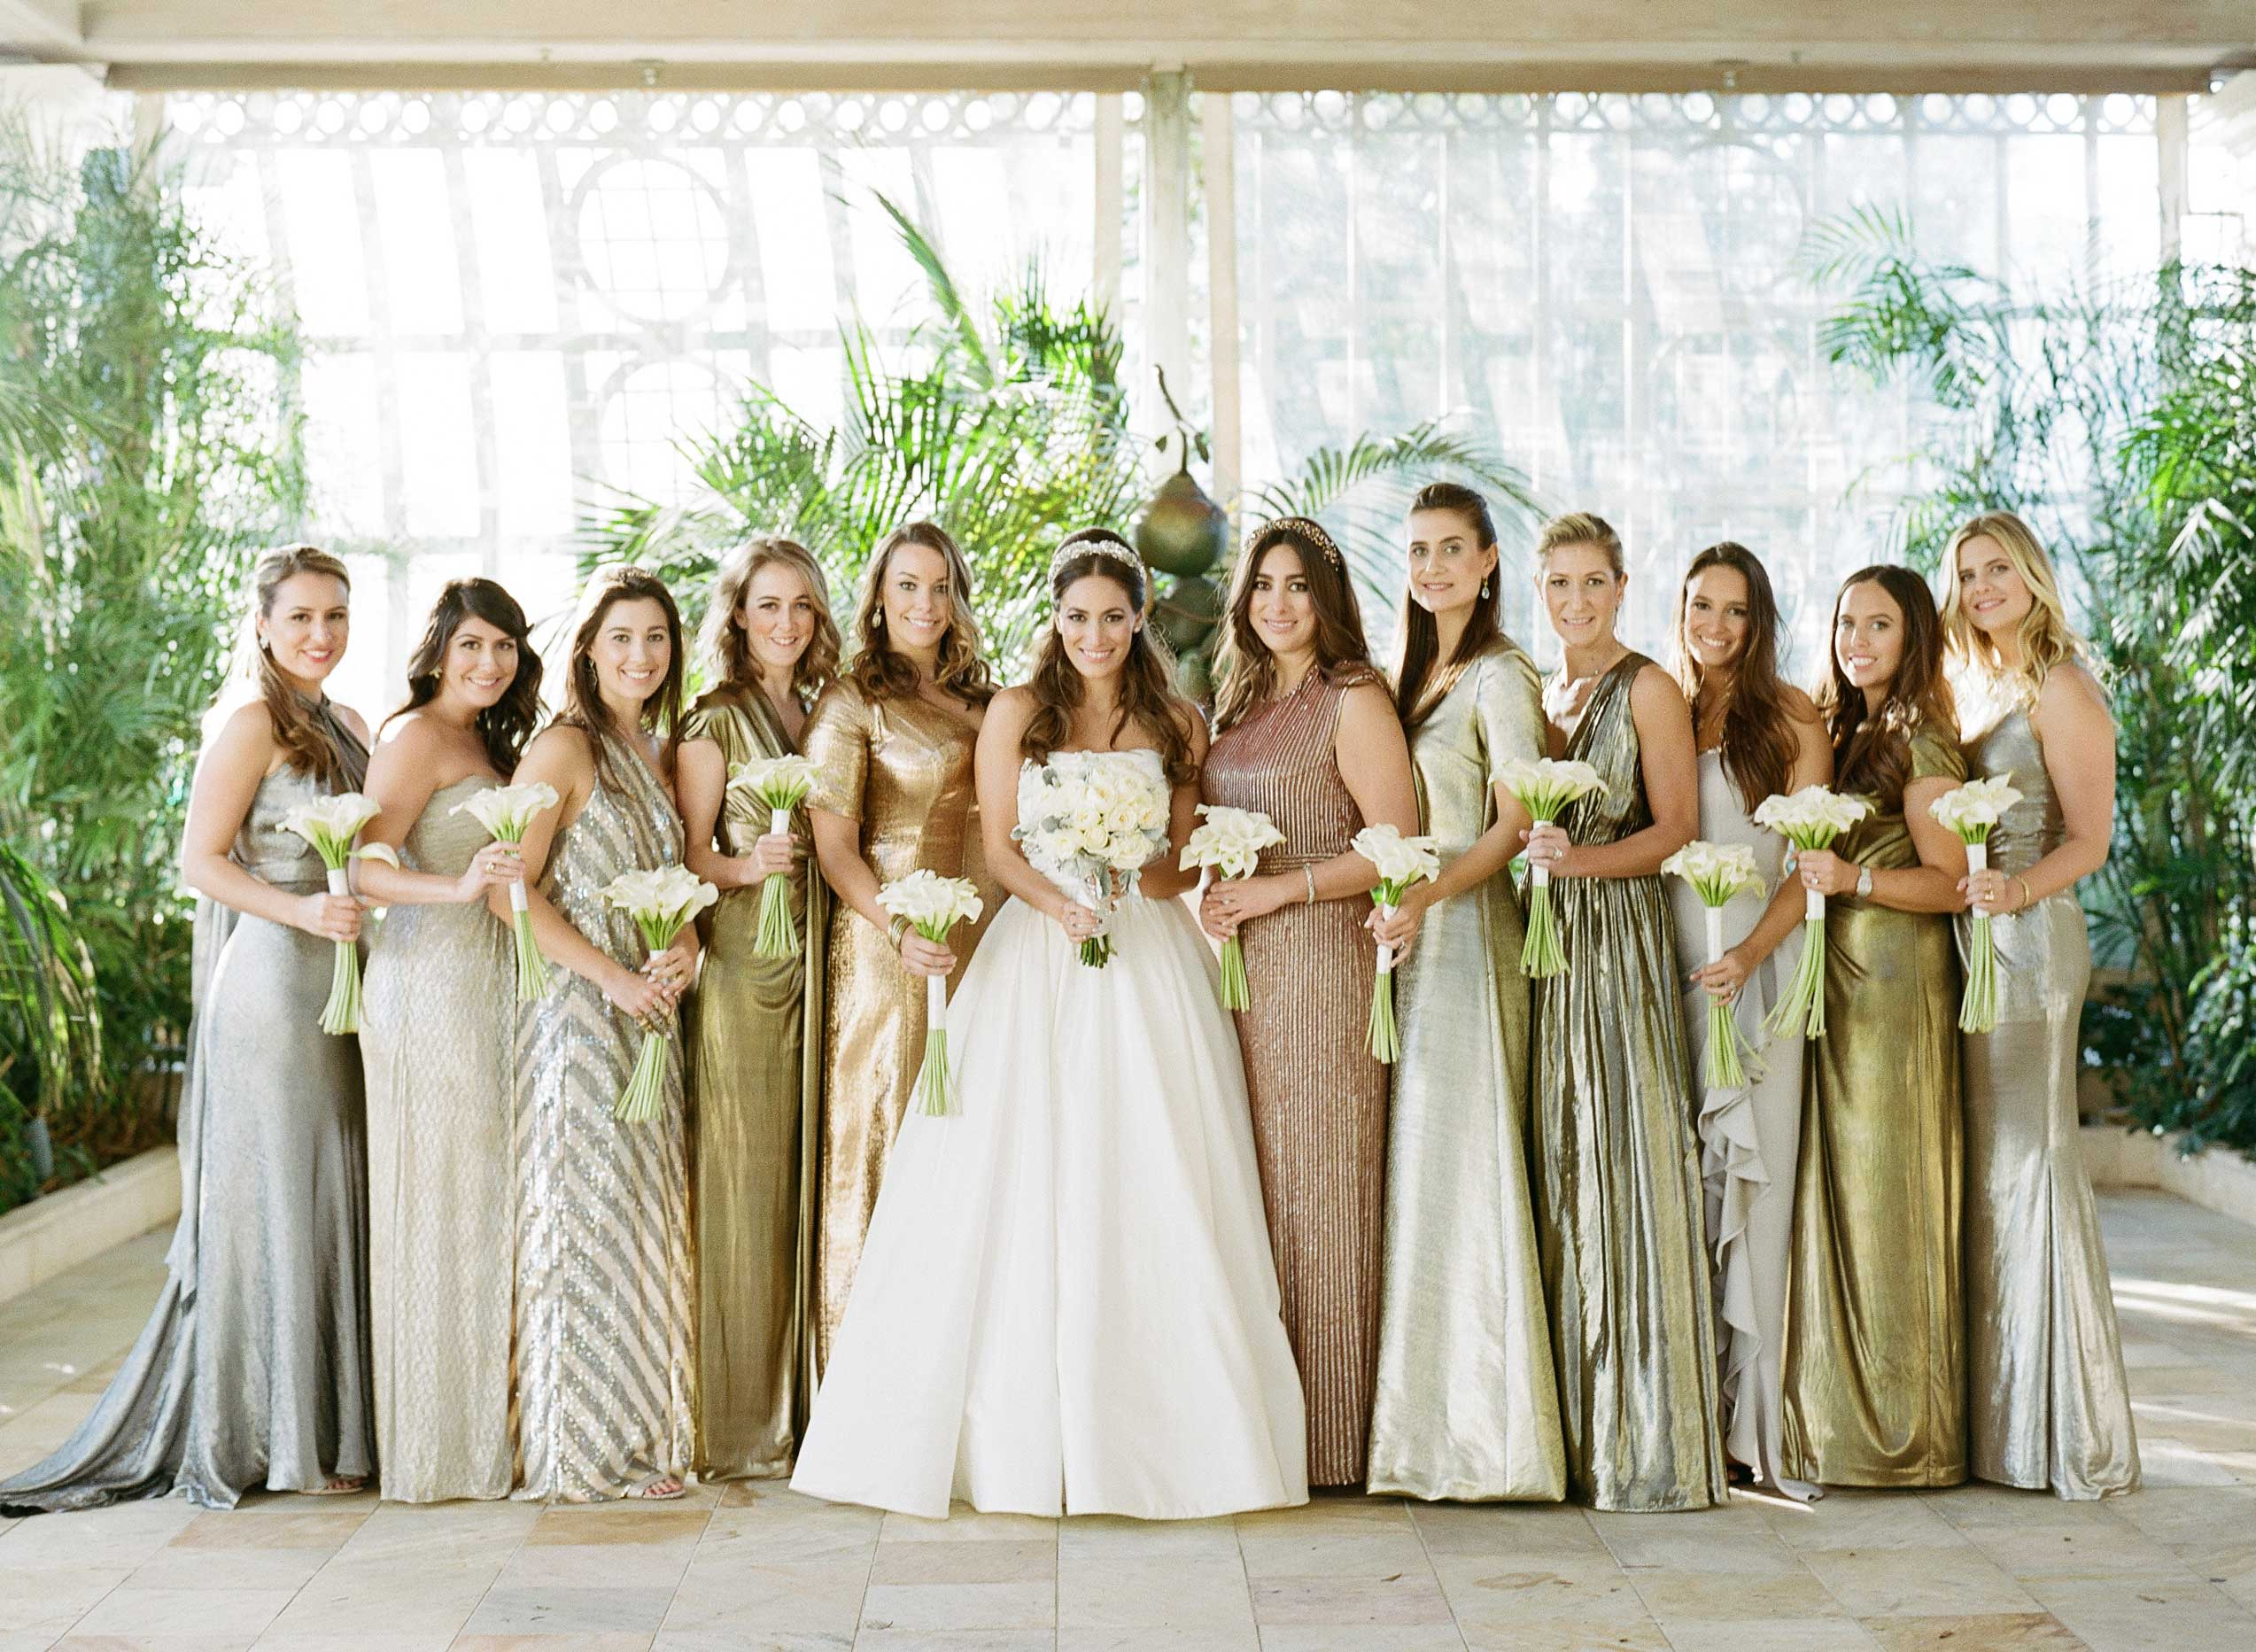 pros and cons of mismatched bridesmaid dresses, mismatched bridesmaid dress trend